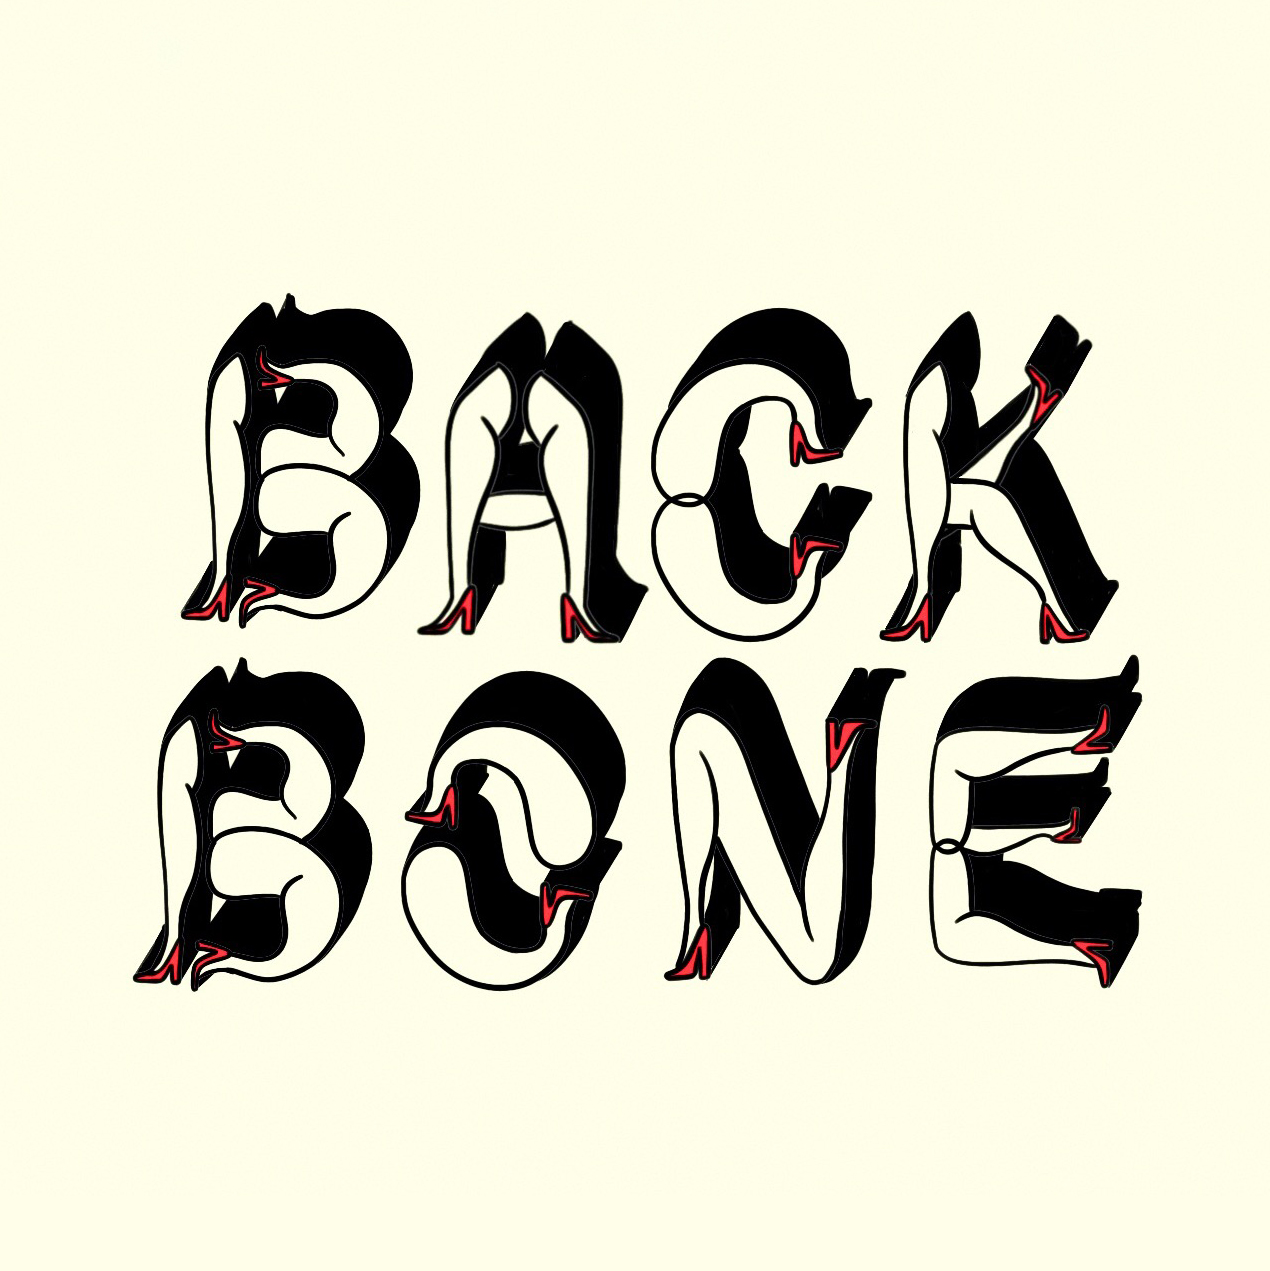 Backbone MIA, Name made out of leg illustrations